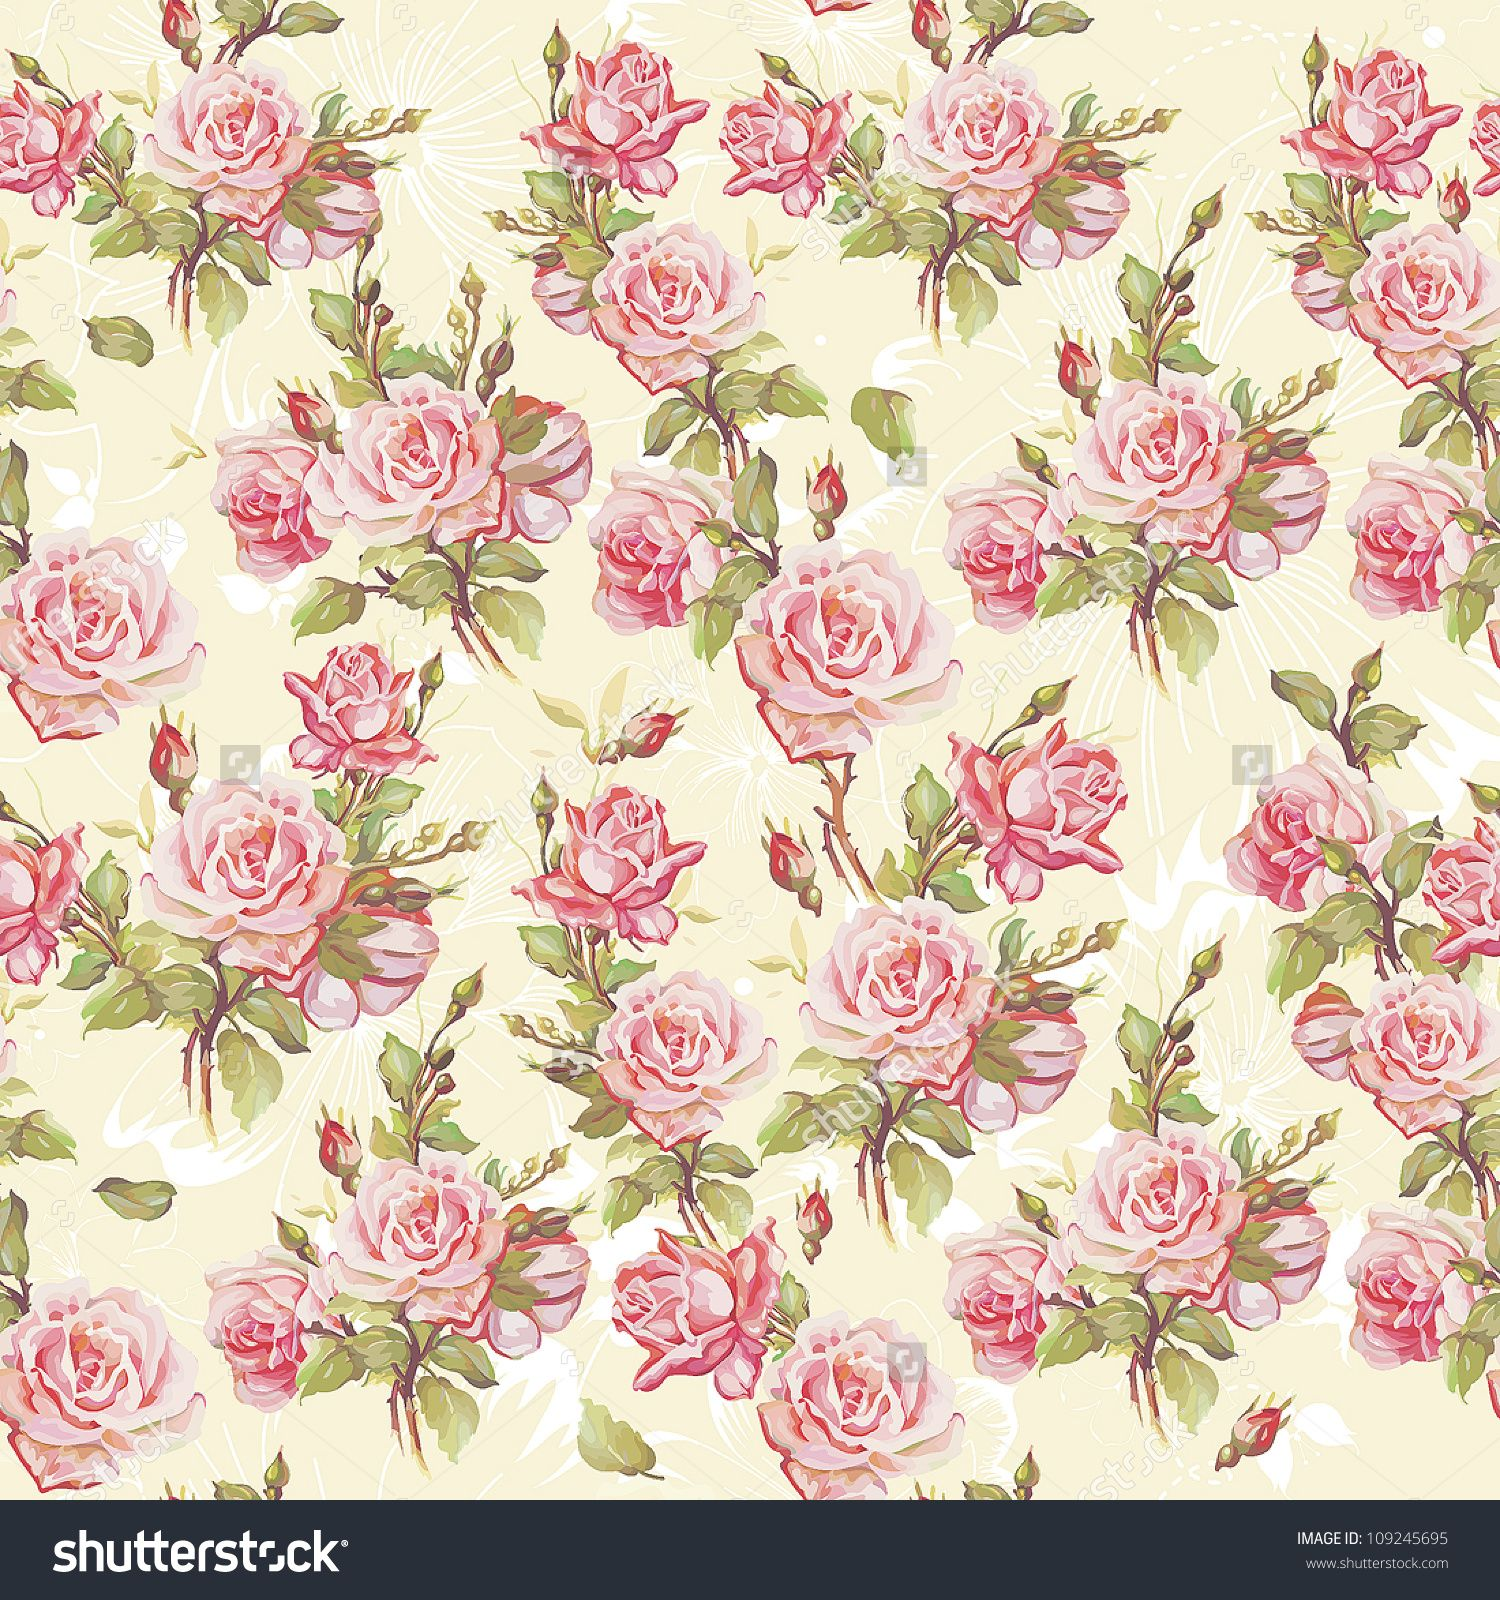 Pink Flowers Wallpaper: Classic Seamless Floral Background. Beautiful Flower